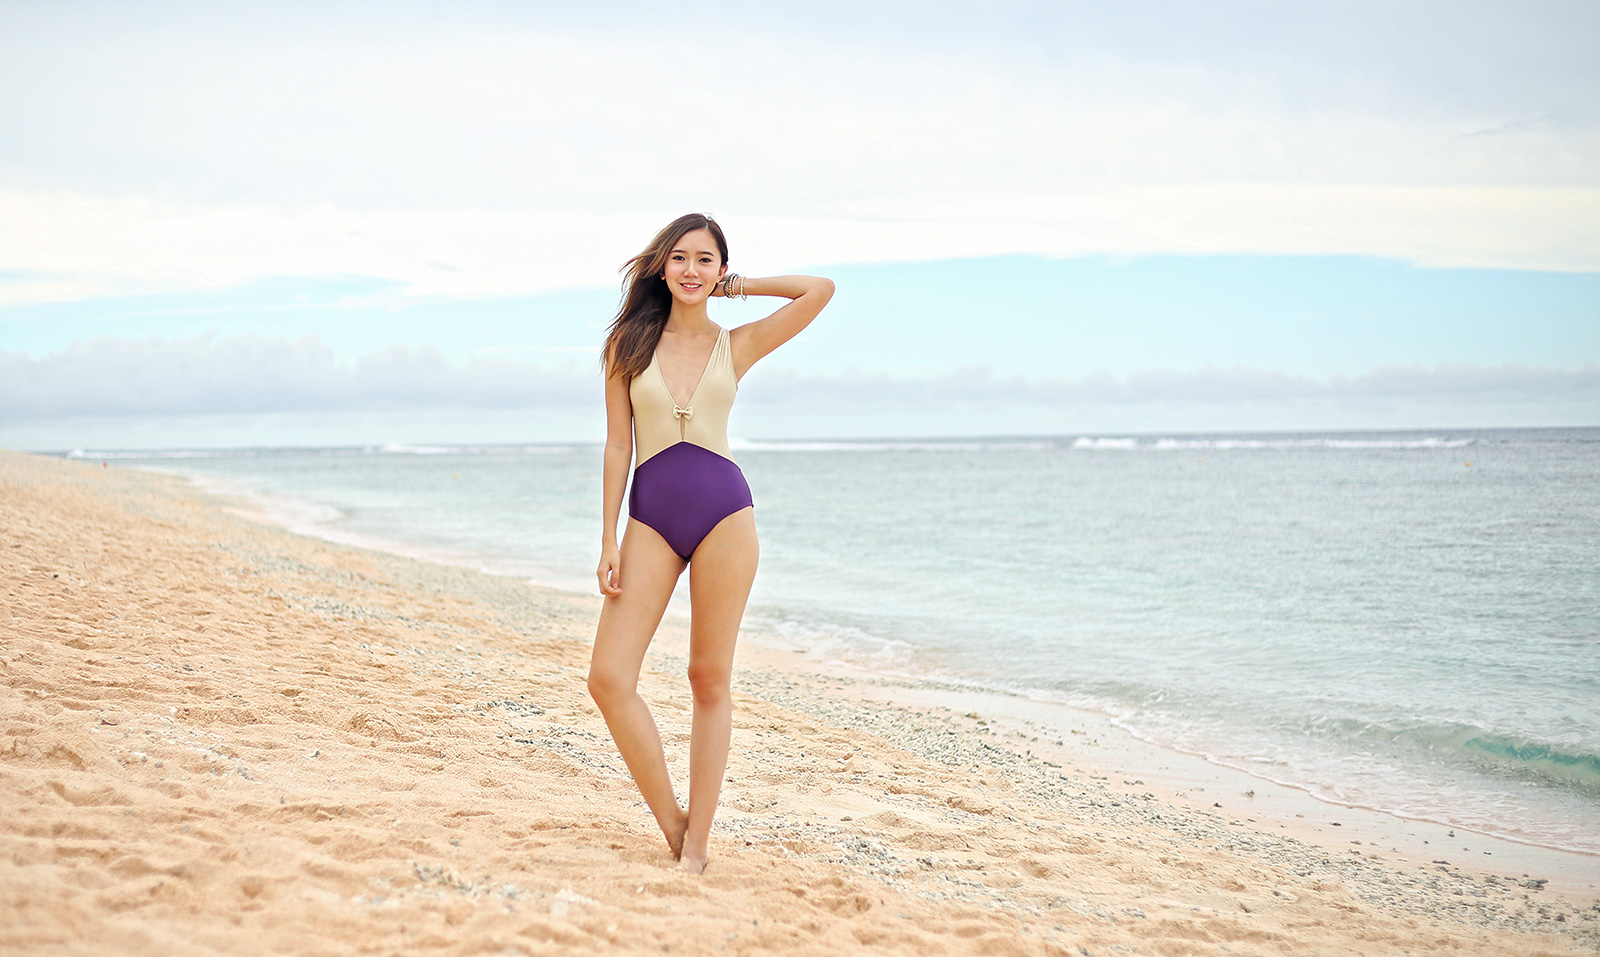 Soak Swimwear swimsuit at Coco Palm Garden Beach, Guam | www.itscamilleco.com